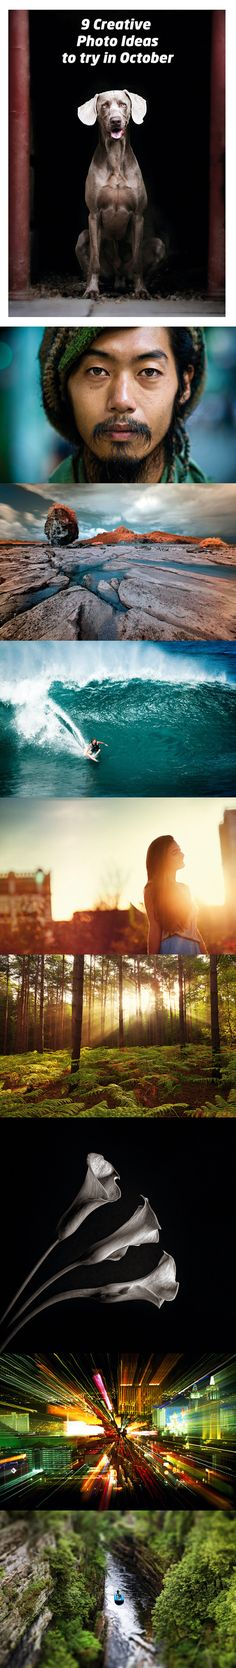 9 creative photo ideas to try in October: photo projects you can do right now to add some inspiration to your portfolio